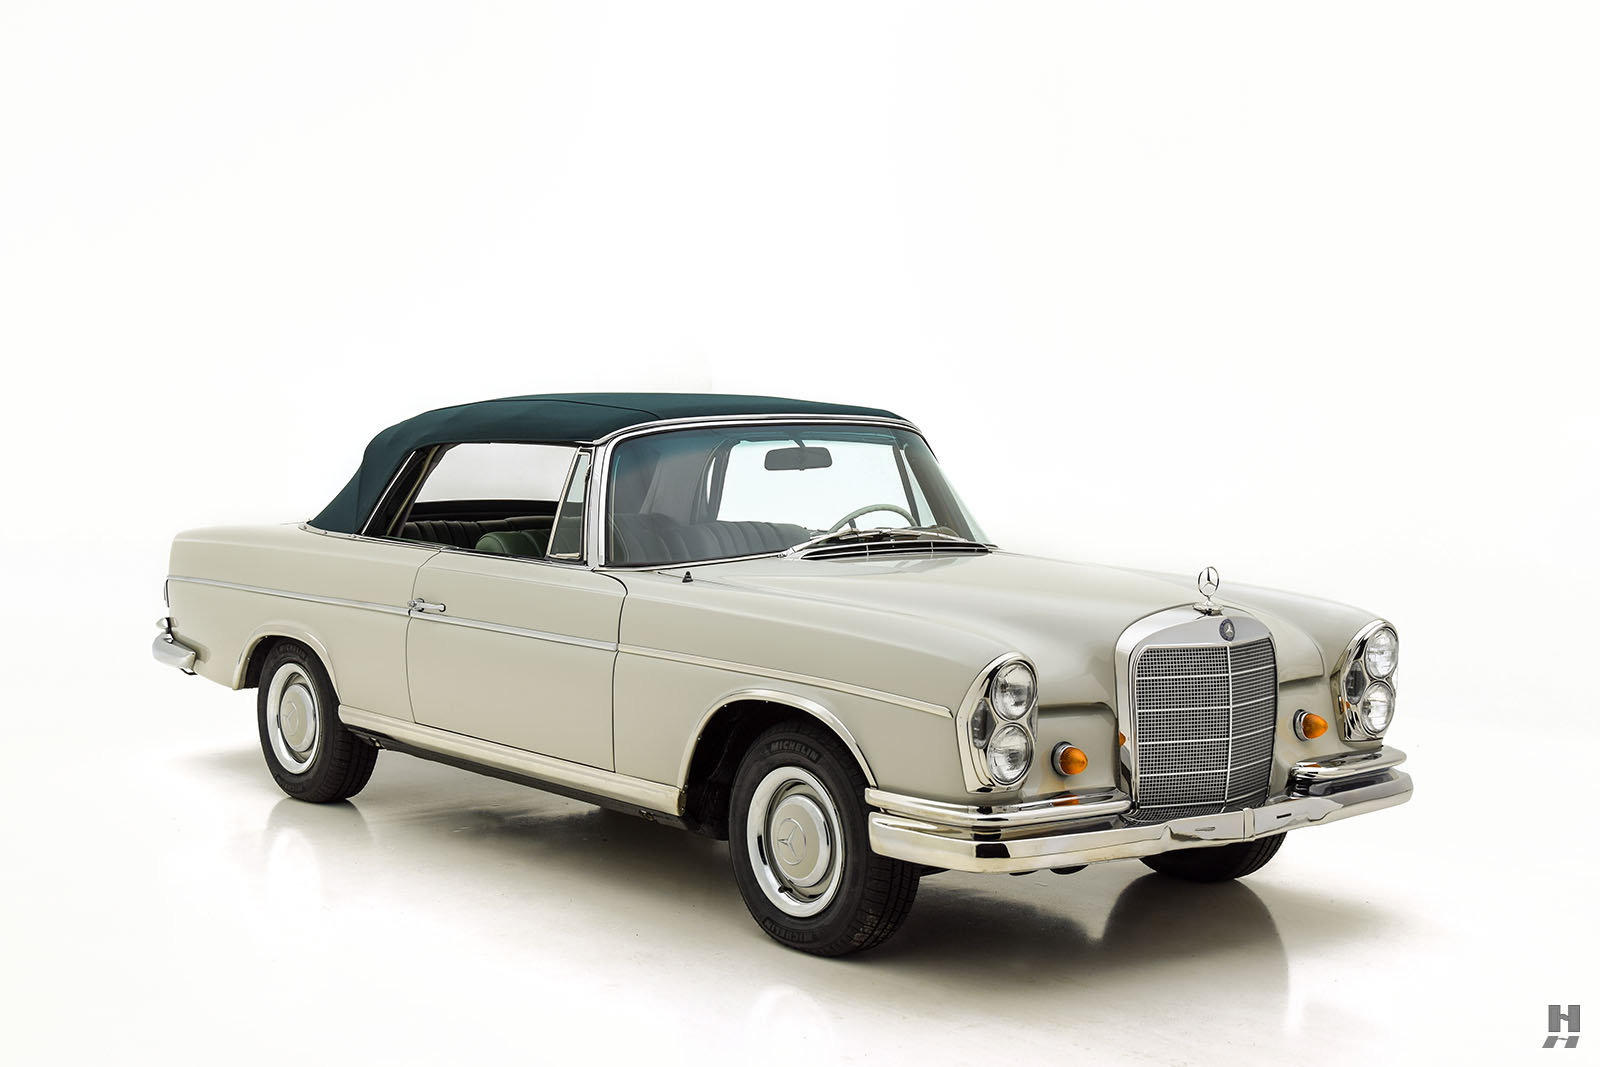 1967 MERCEDES-BENZ 300SE CONVERTIBLE For Sale (picture 2 of 6)